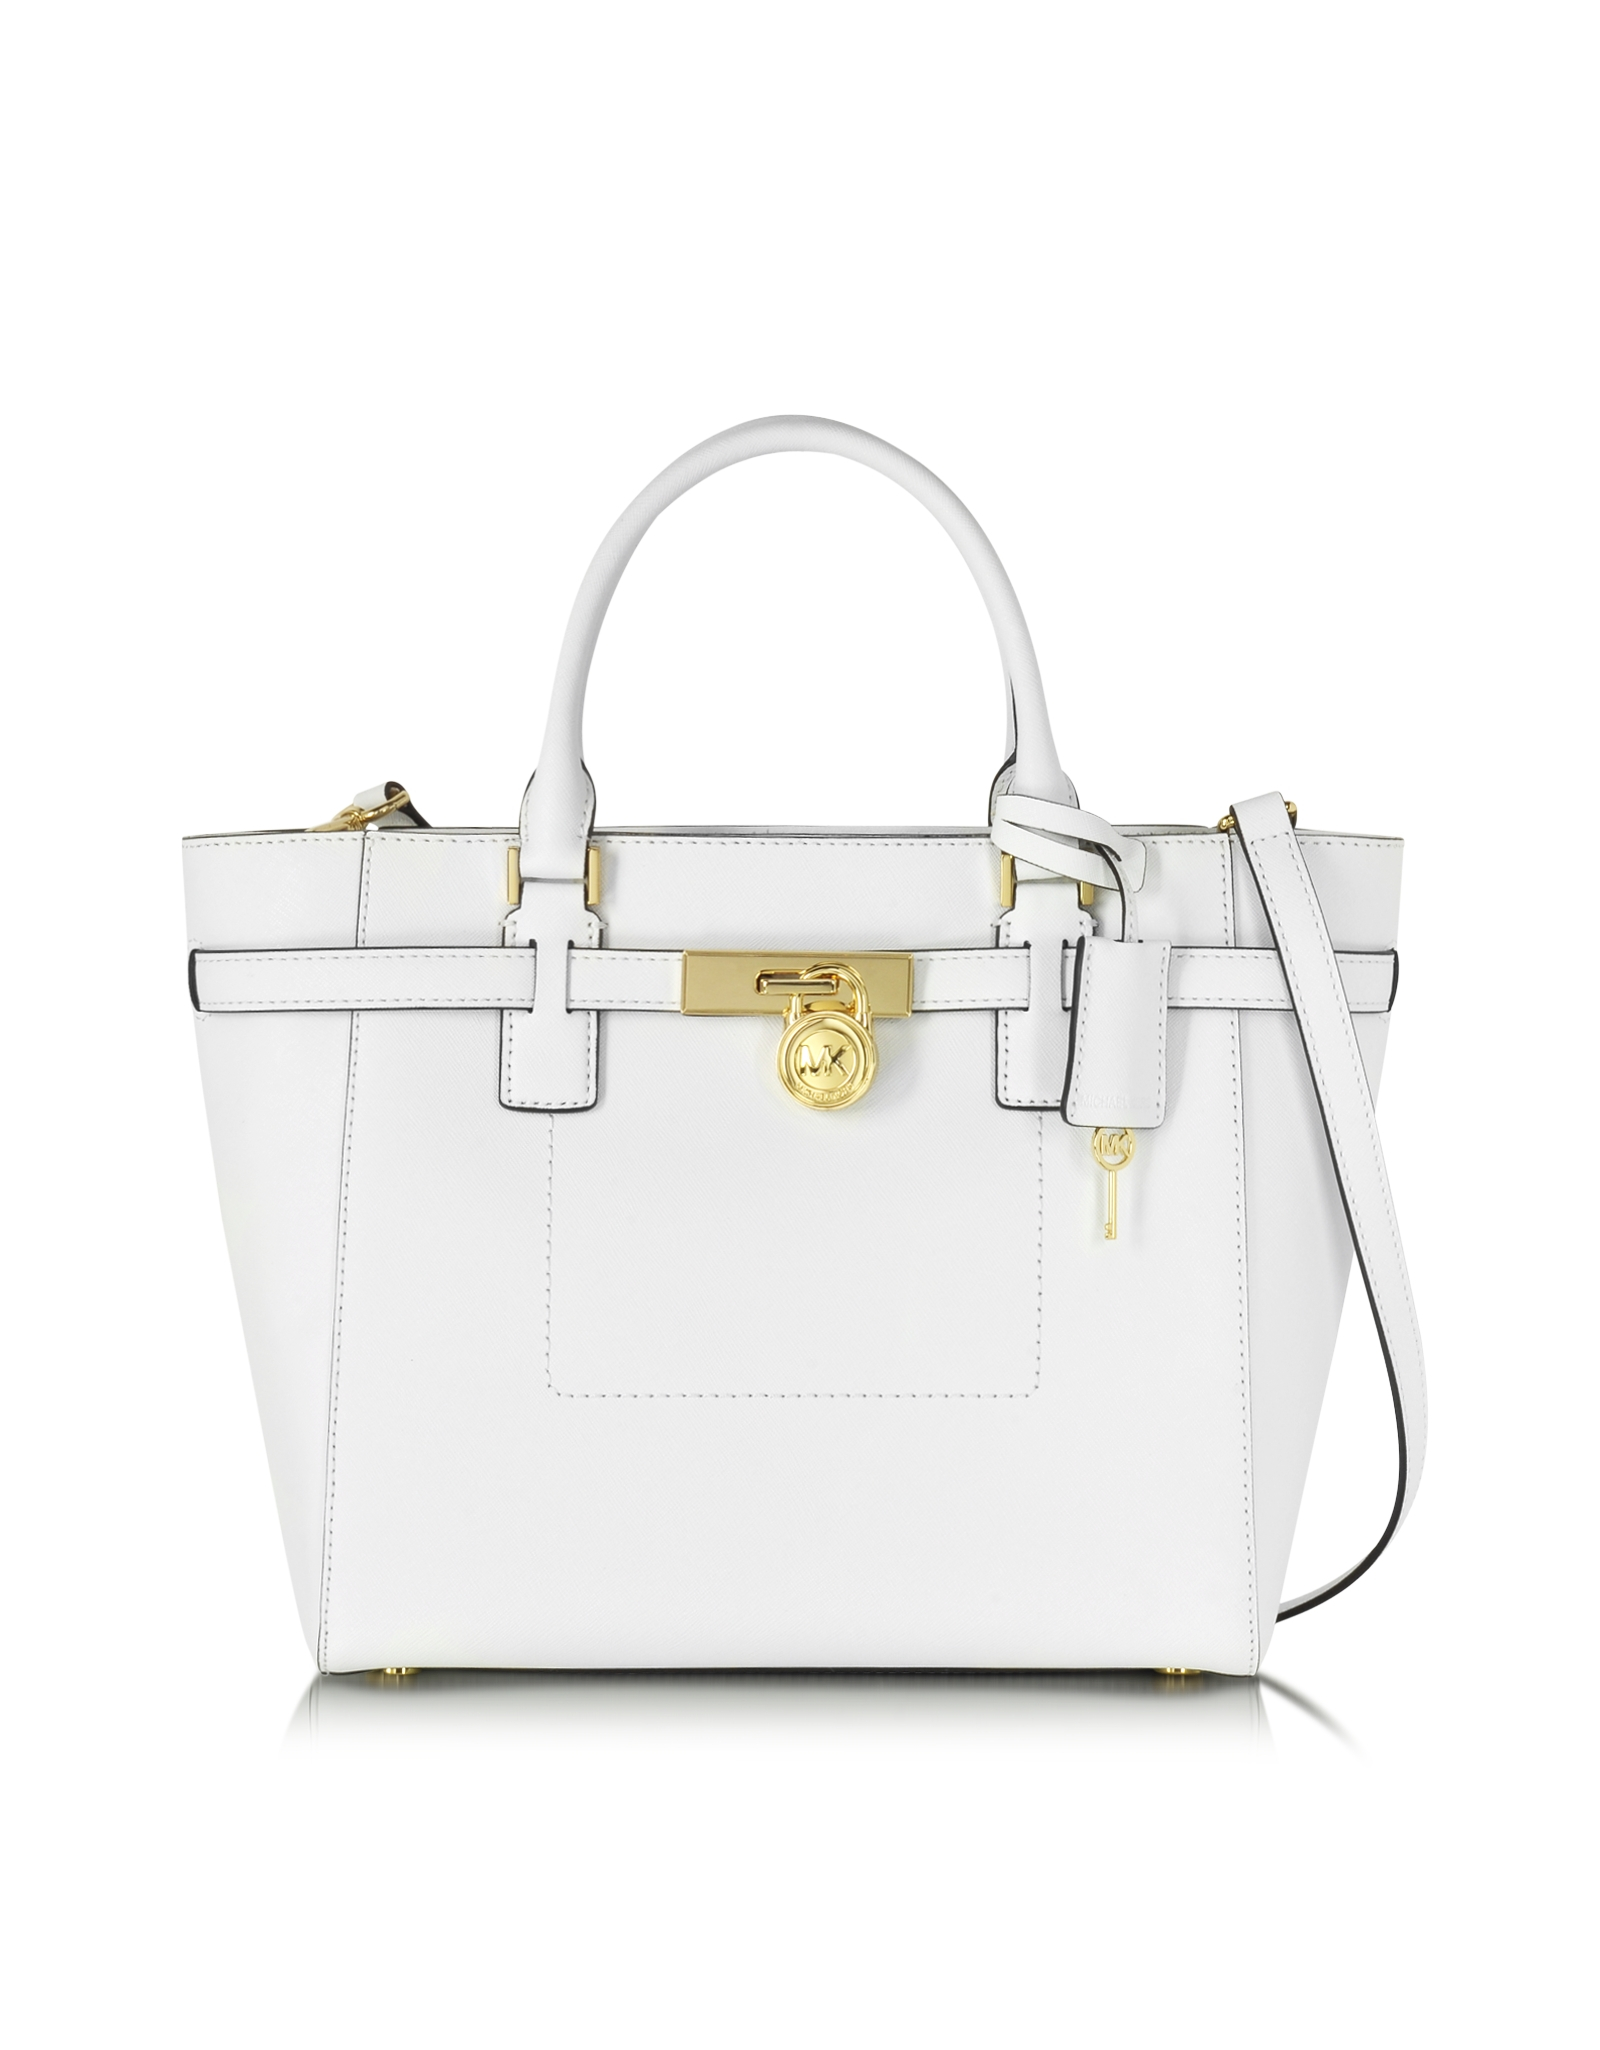 Michael kors Hamilton Saffiano Leather Large Top Zip Tote Bag in ...